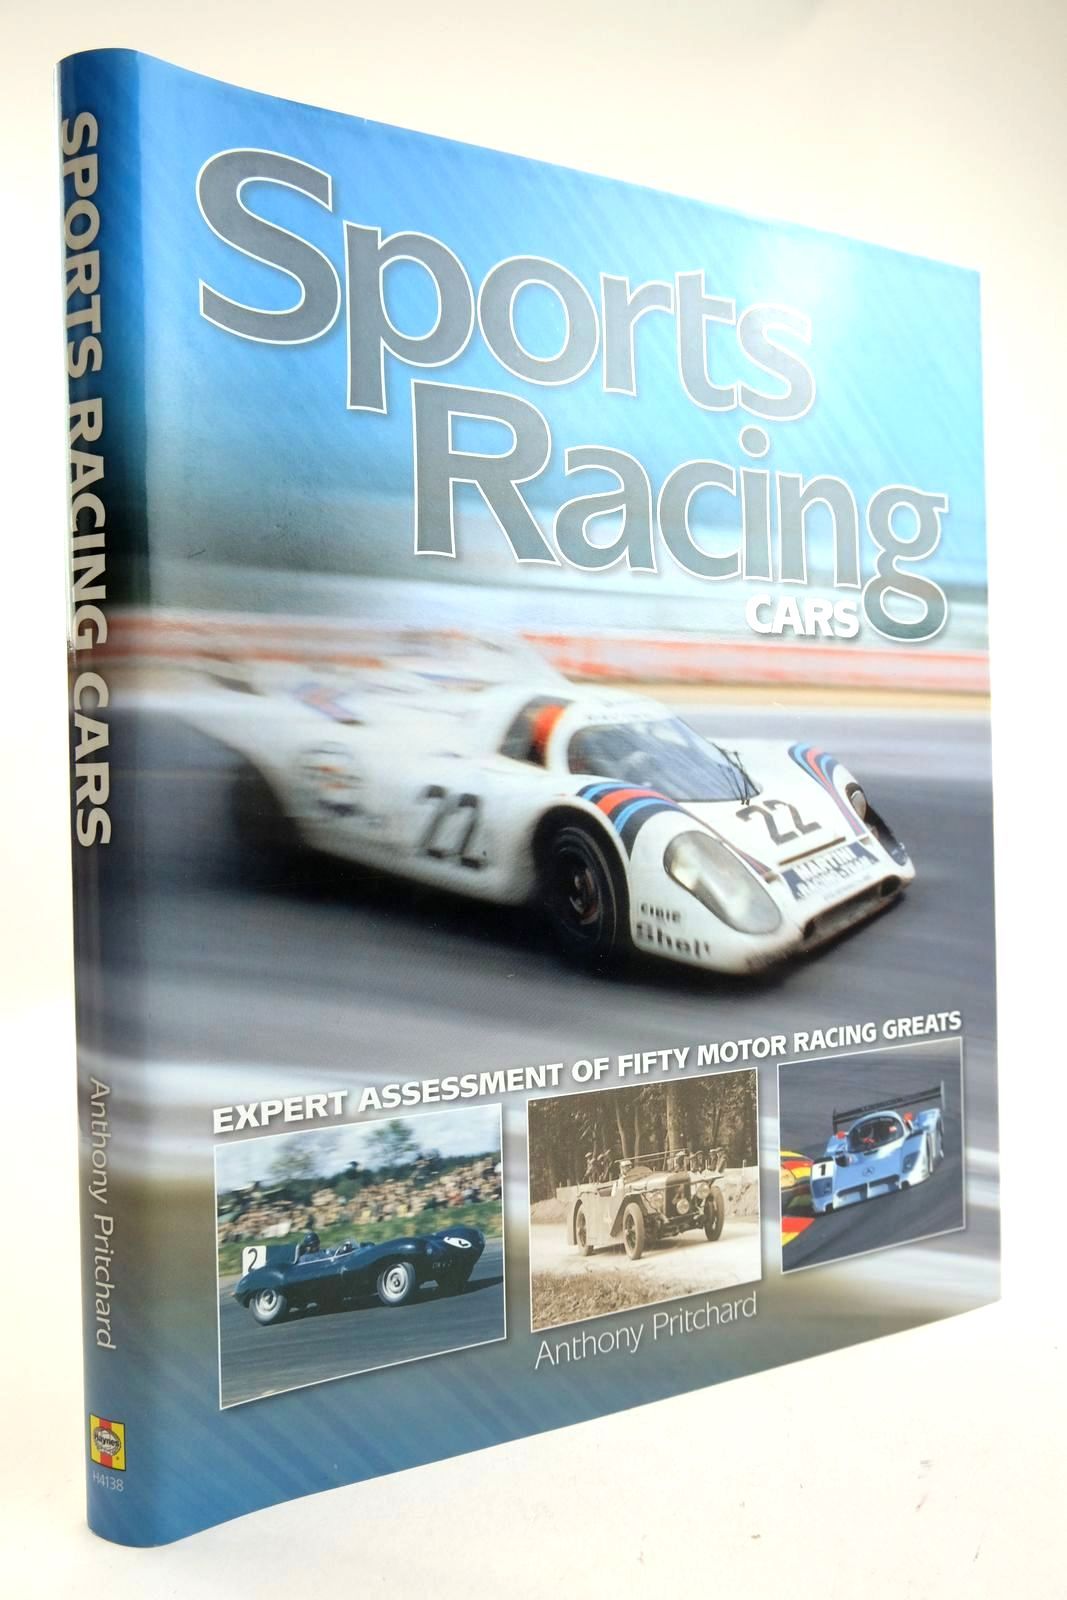 Photo of SPORTS RACING CARS written by Pritchard, Anthony published by Haynes Publishing (STOCK CODE: 2132857)  for sale by Stella & Rose's Books